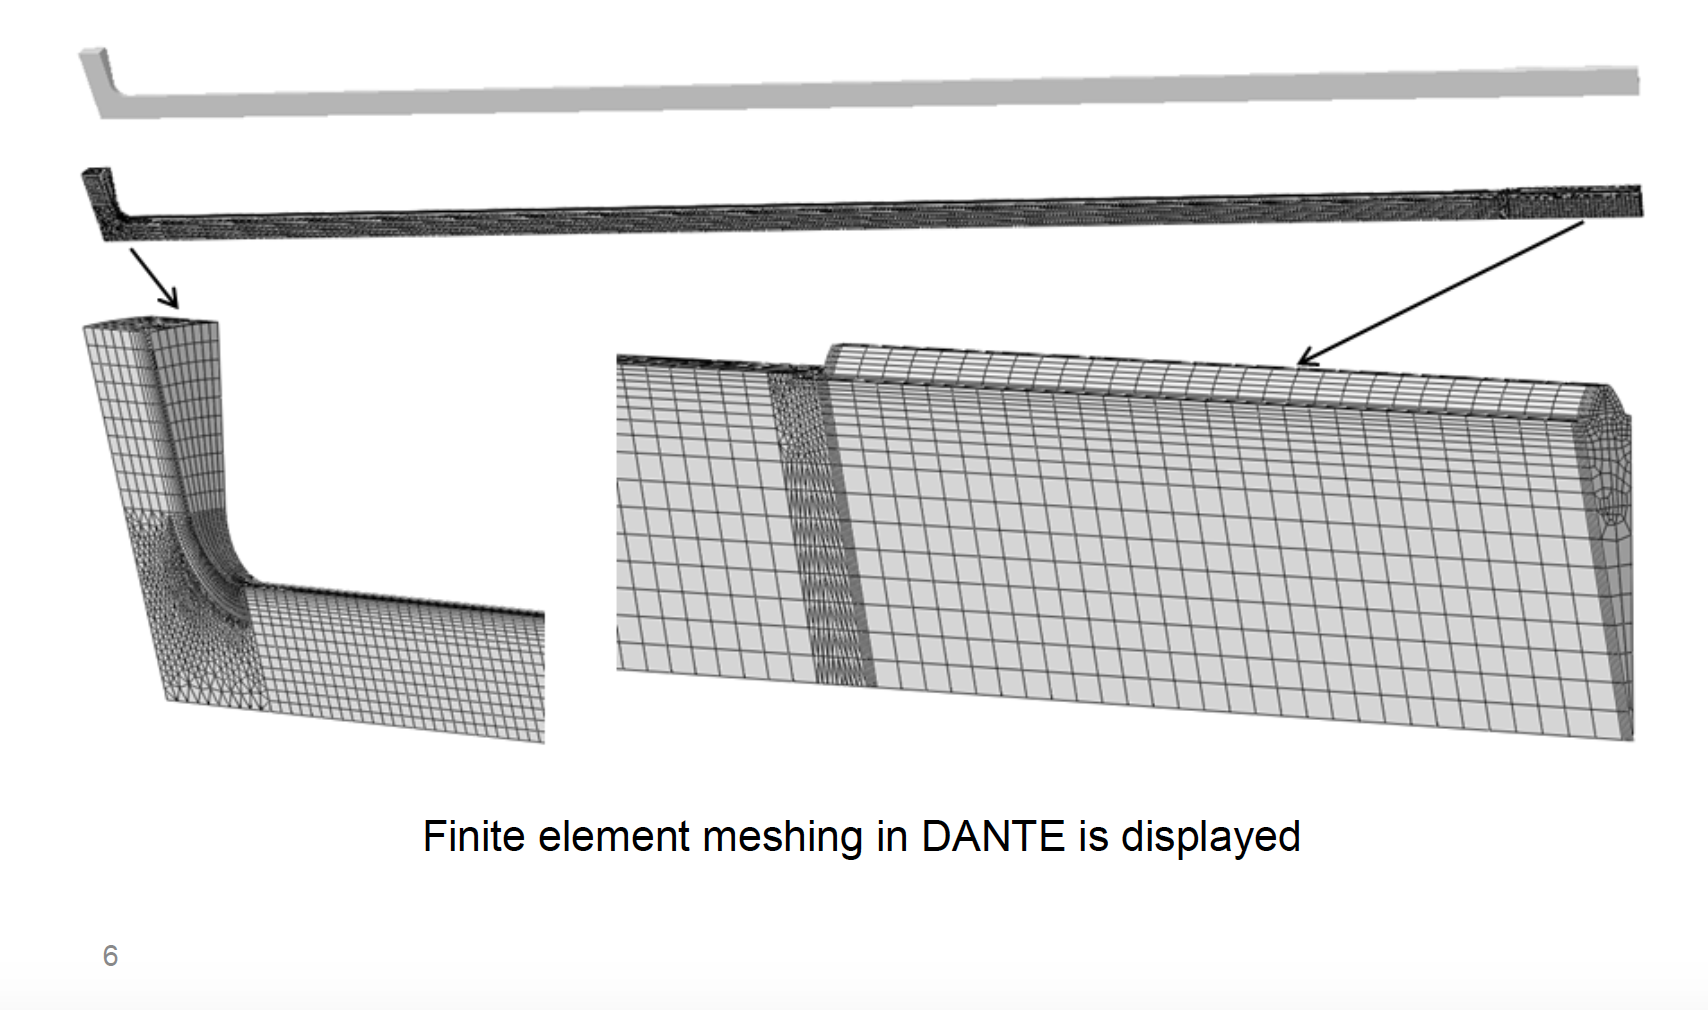 Fluxtrol | Integrated Computational Development of Induction Heat Treatment Process for Automotive Axle Shafts Figure 5 - Due to Symmetry, Single Tooth of Spline is Modeled in DANTE